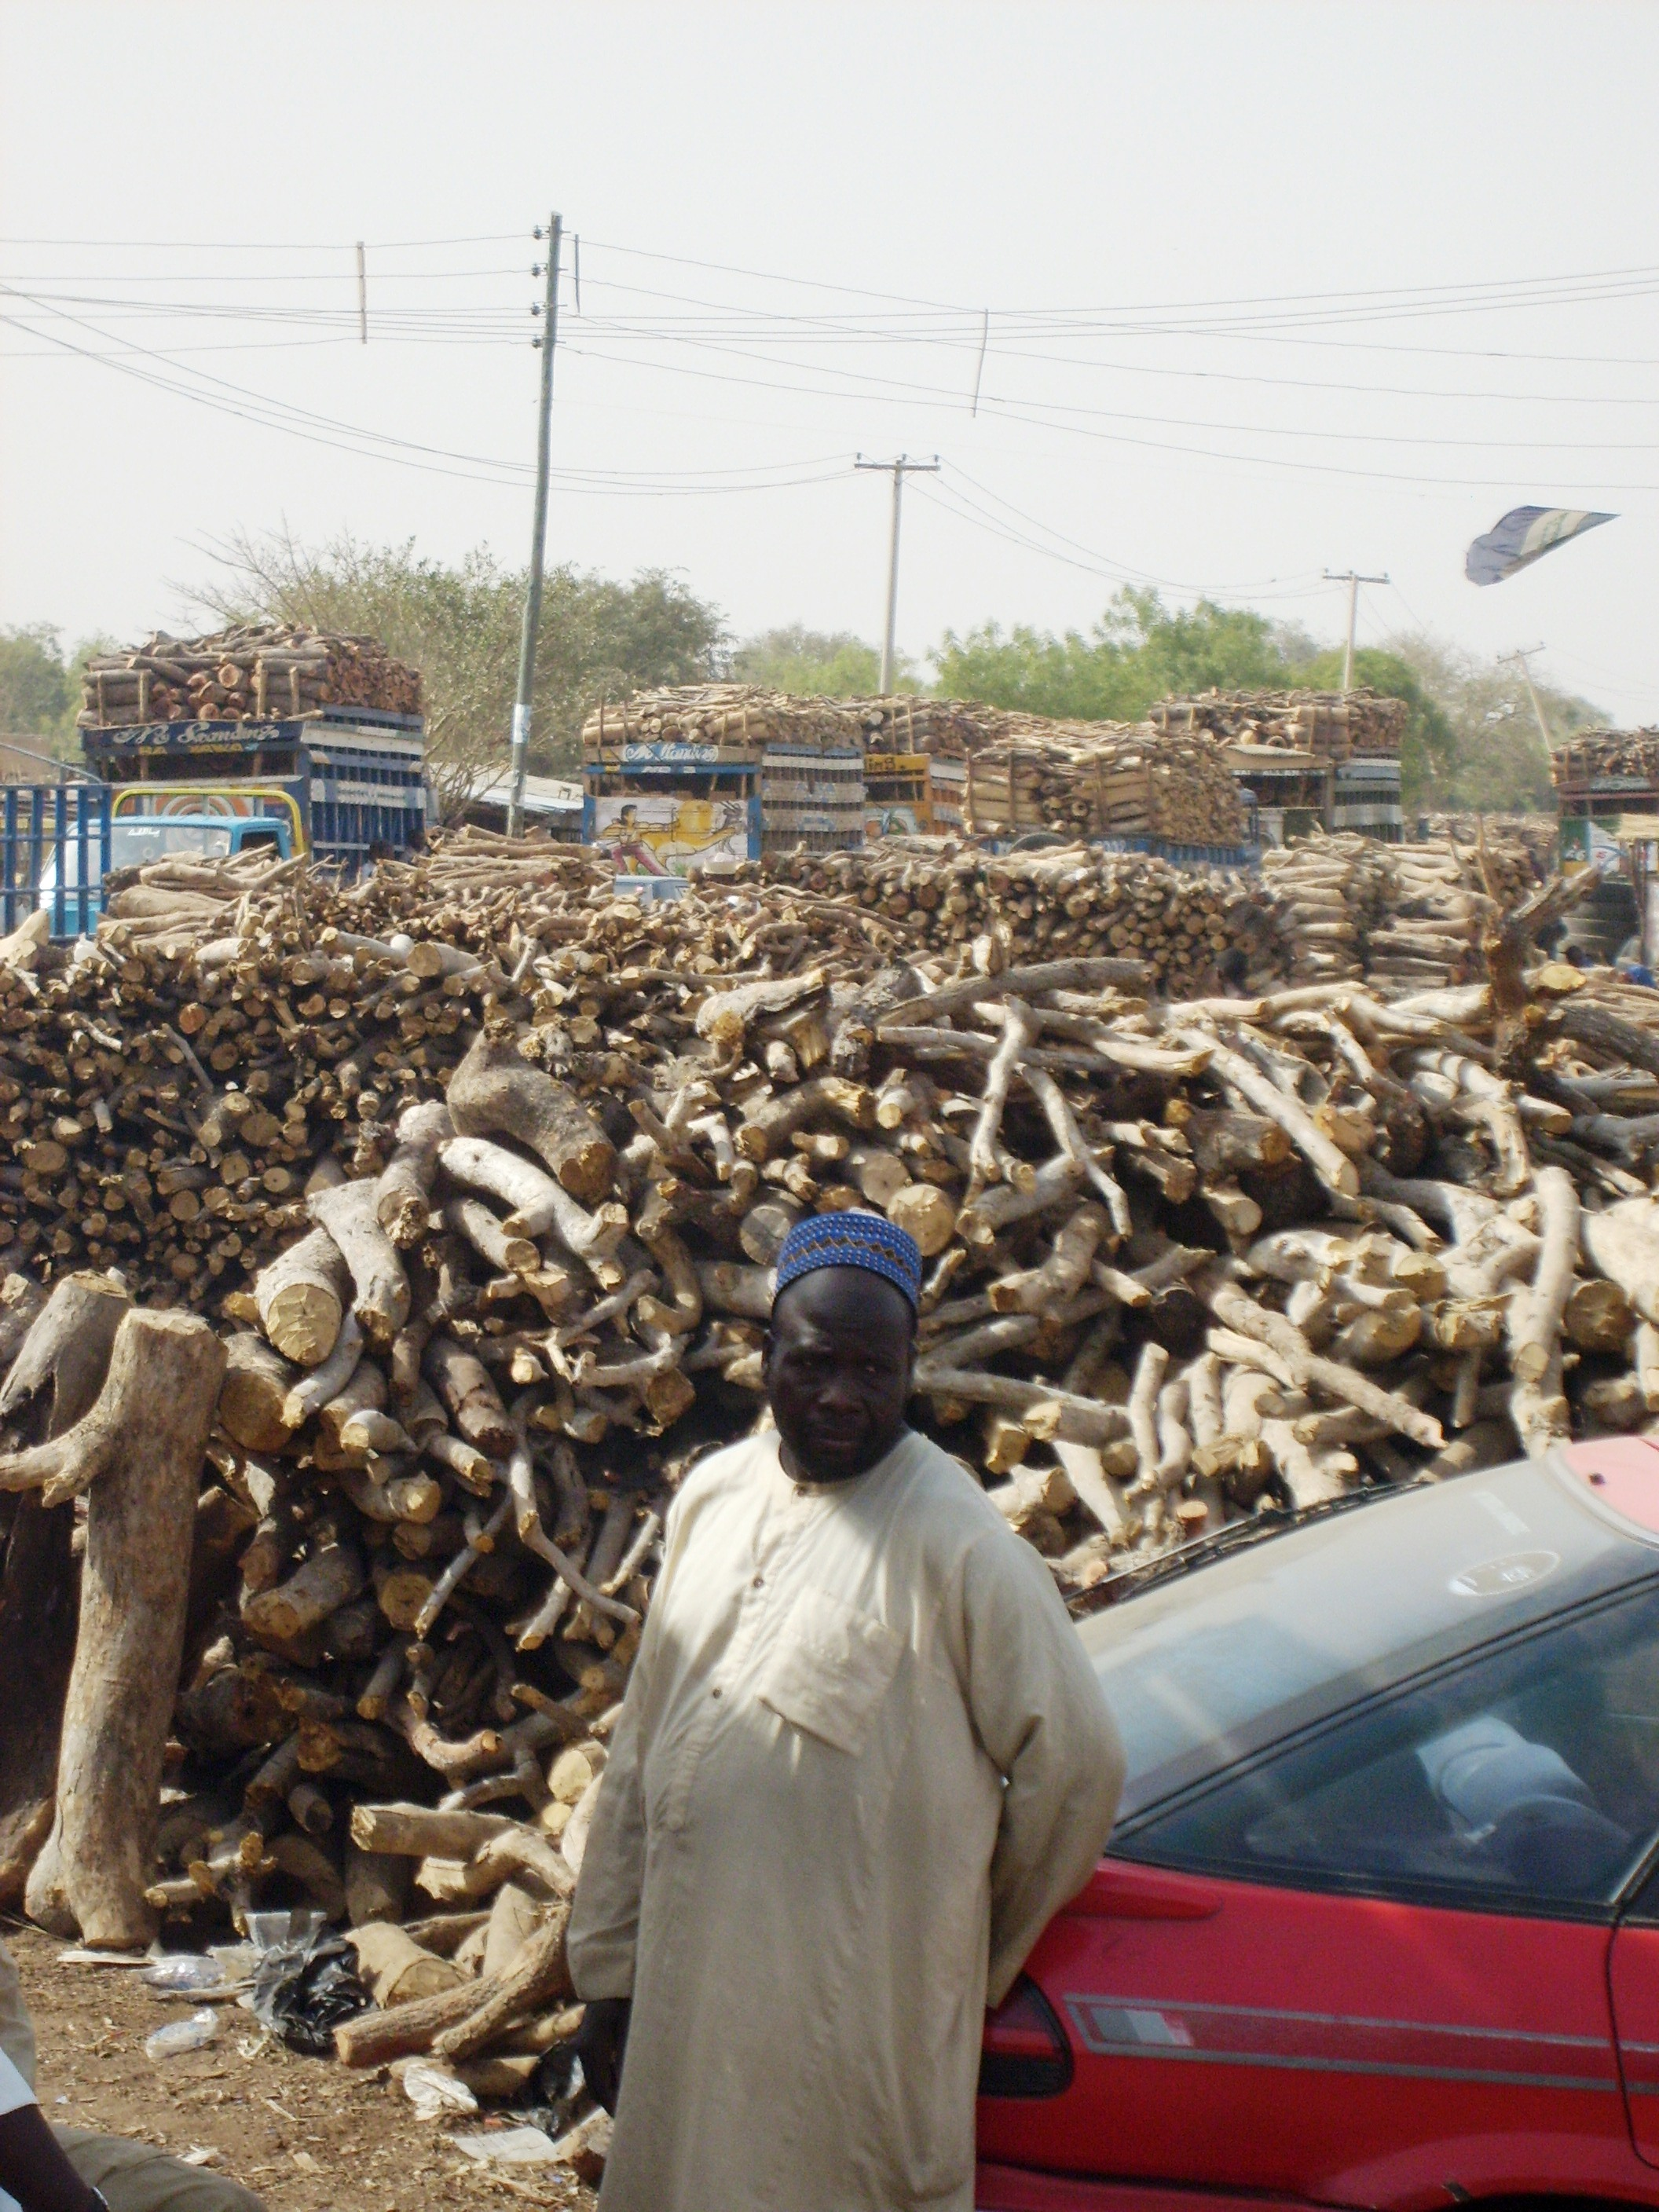 Mariri wood depot in Kano.